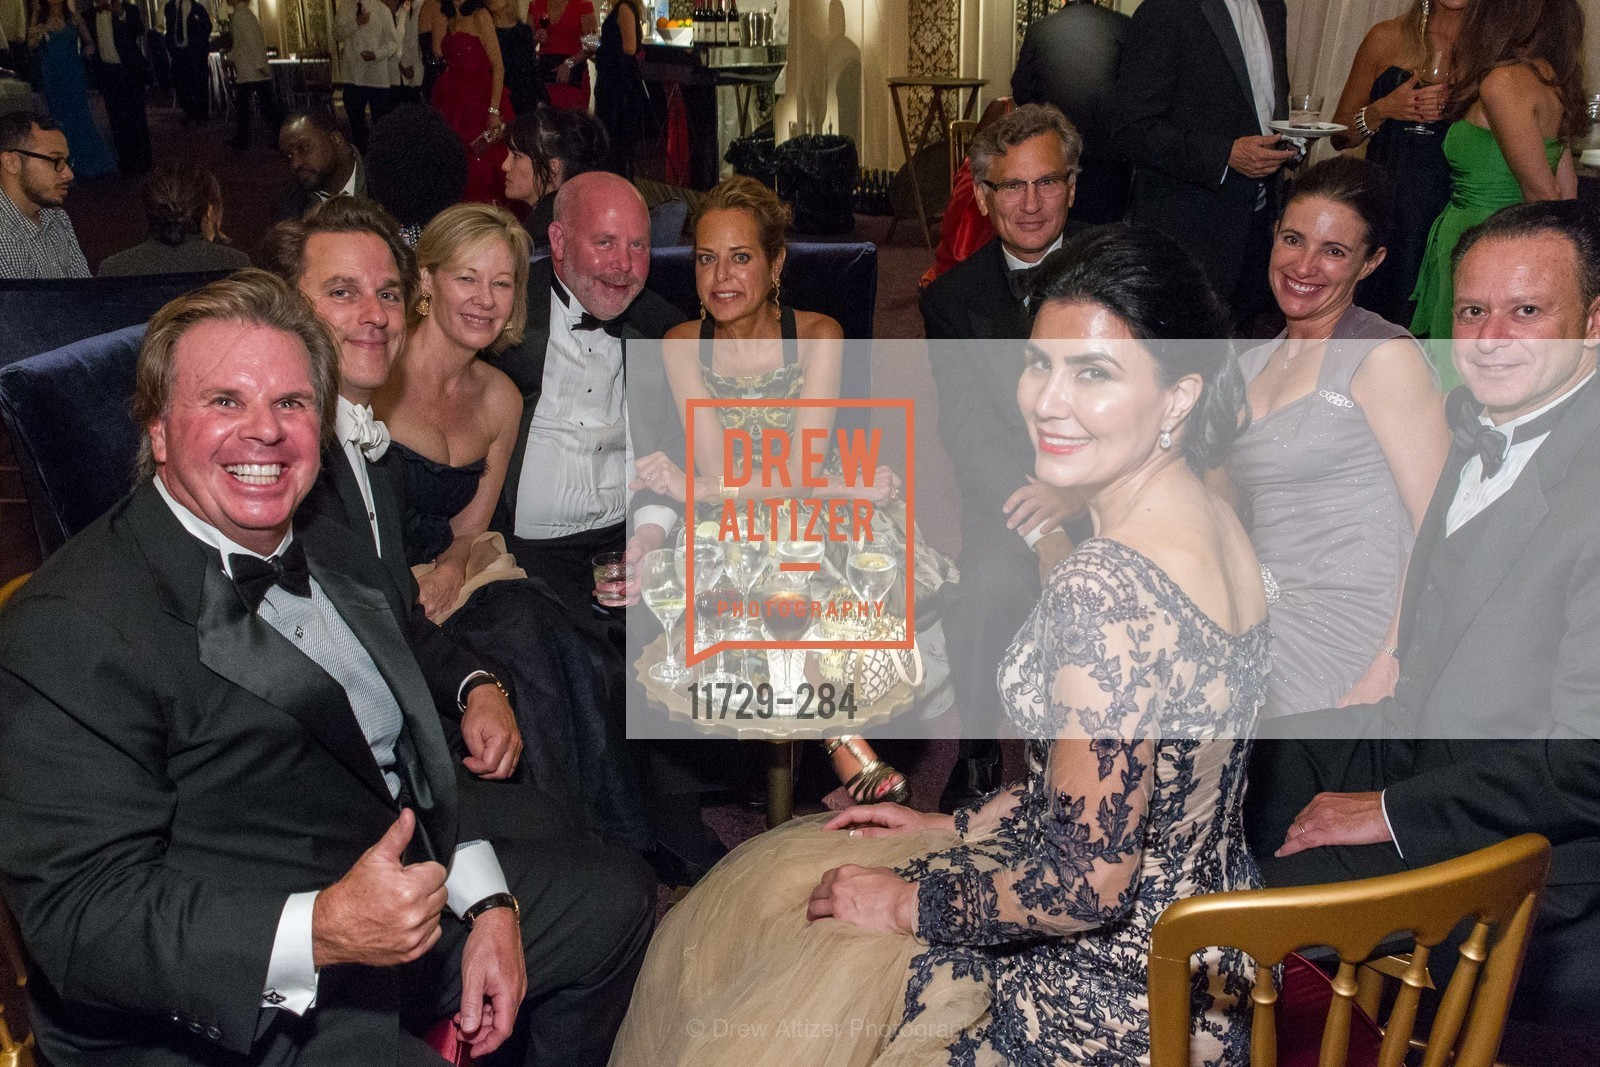 Gary Drysdale, Gregory Malin, Janet Lamkin, Paul Holm, Charlot Malin, Bill Lamkin, Anne Laury, Daniel Laury, Afsaneh Akhtari, Opera Ball 2015: Moonlight & Music, War Memorial Opera House. 301 Van Ness Ave, September 11th, 2015,Drew Altizer, Drew Altizer Photography, full-service event agency, private events, San Francisco photographer, photographer California